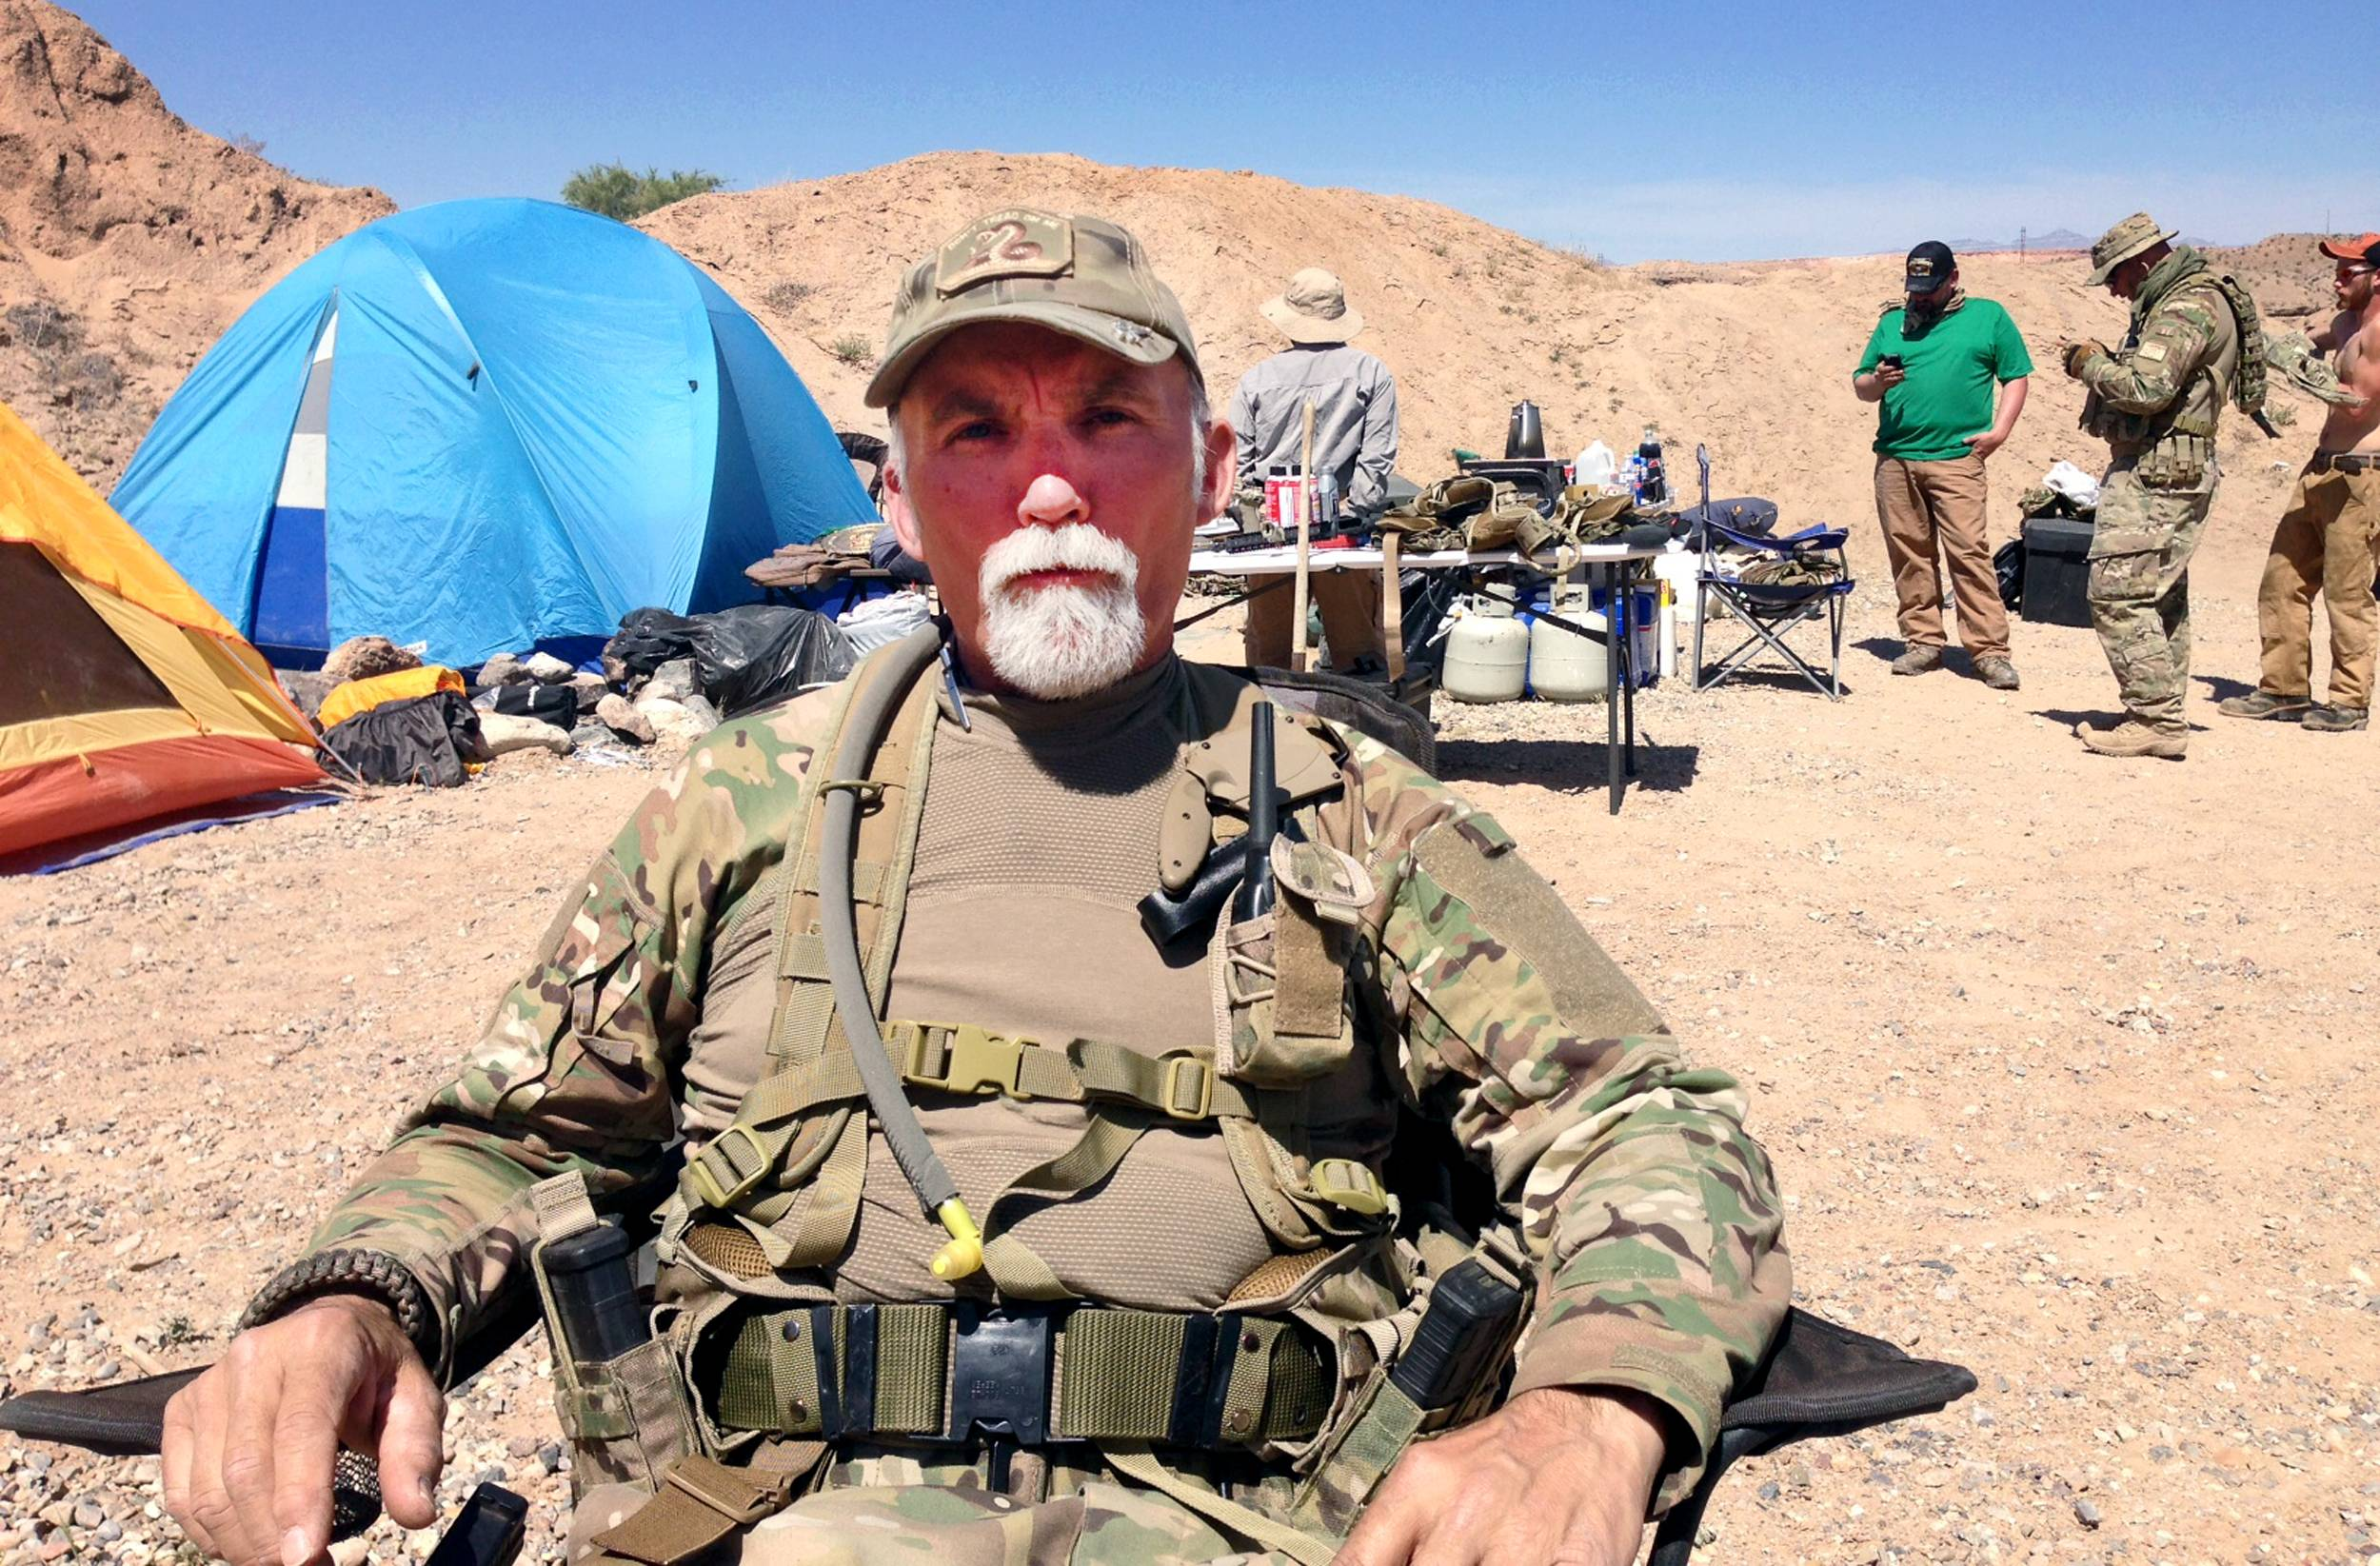 Jerry DeLemus, of Rochester, N.H., talks on April 16 about heading a group of self-described militia members who have been camping on rancher Cliven Bundy's ranch near Bunkerville, Nev.